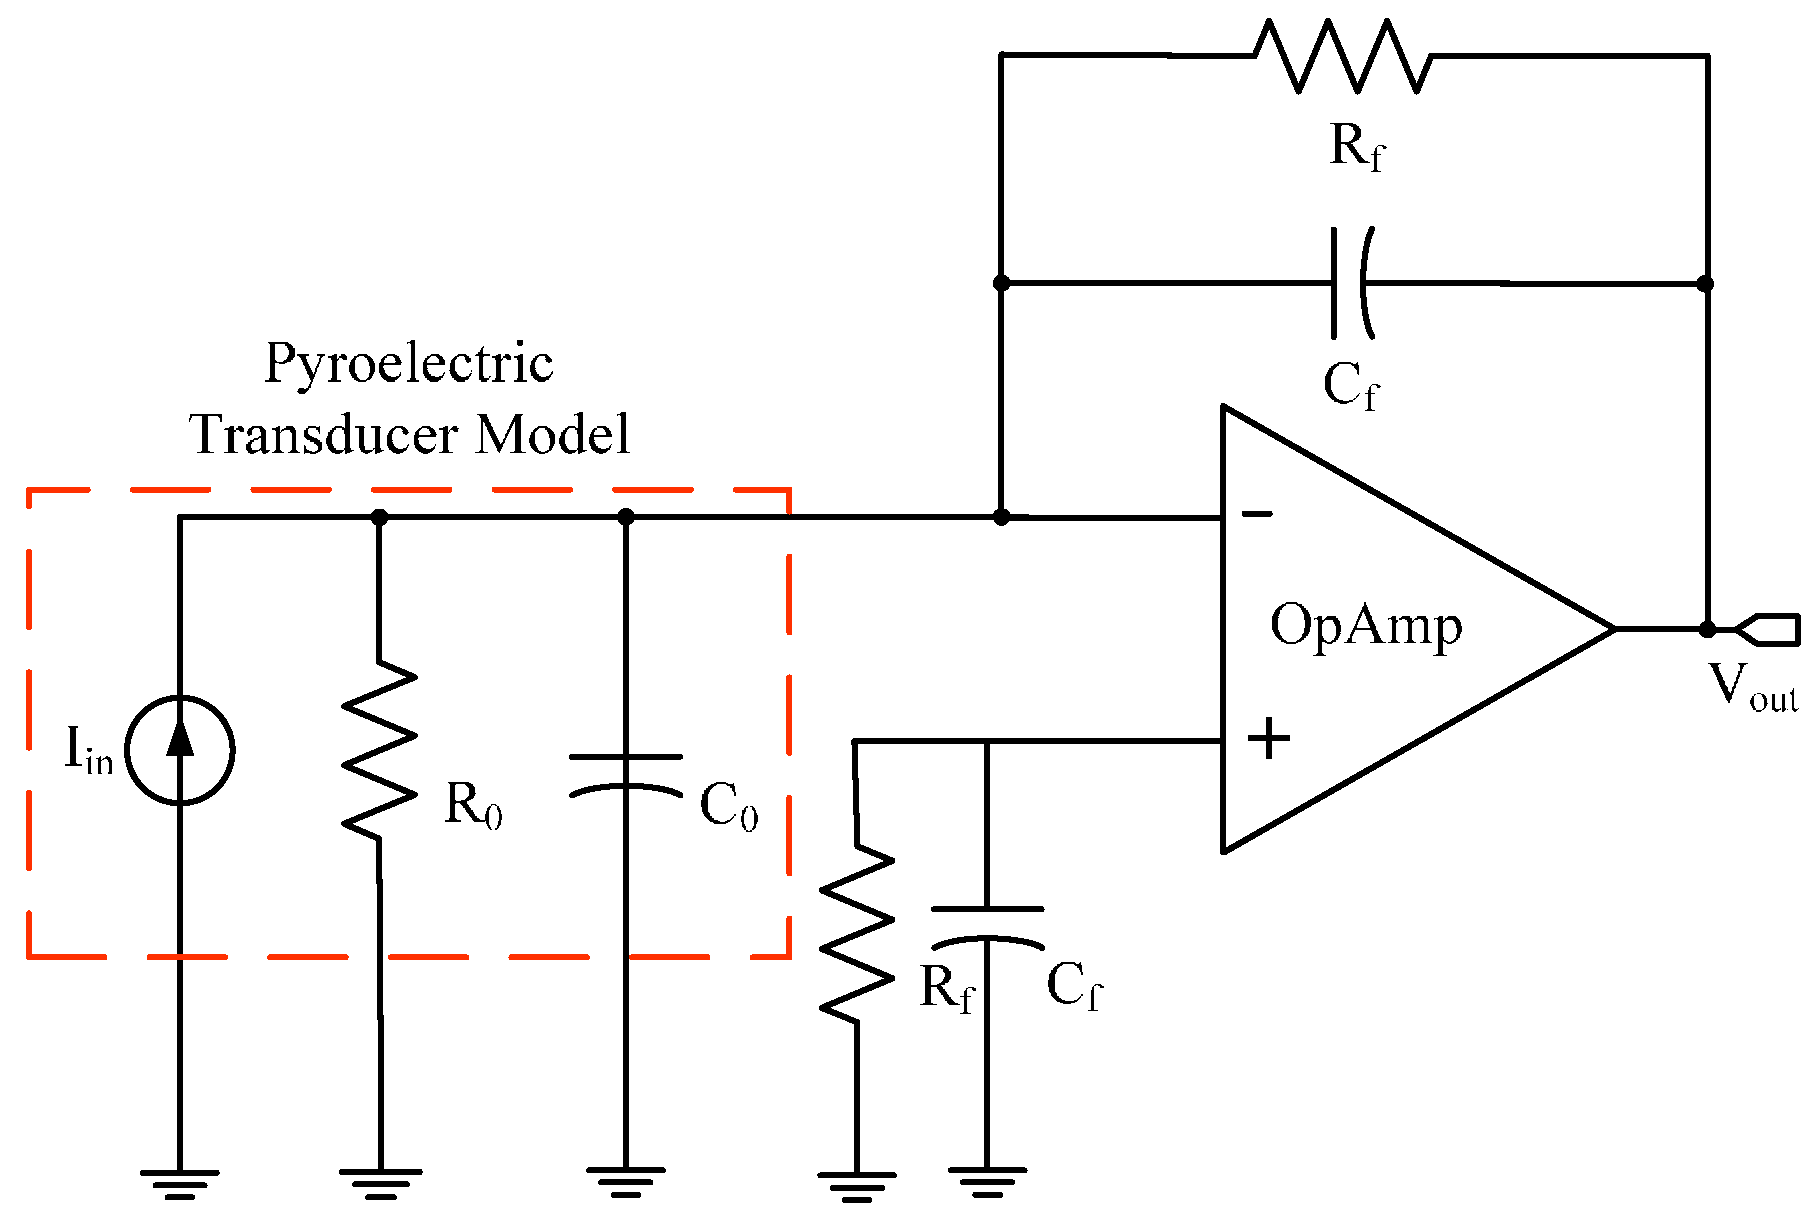 Sensors Free Full Text Pvdf Sensor Stimulated By Infrared Circuit Diagram Moreover 17 00850 G004 Figure 4 Schematic